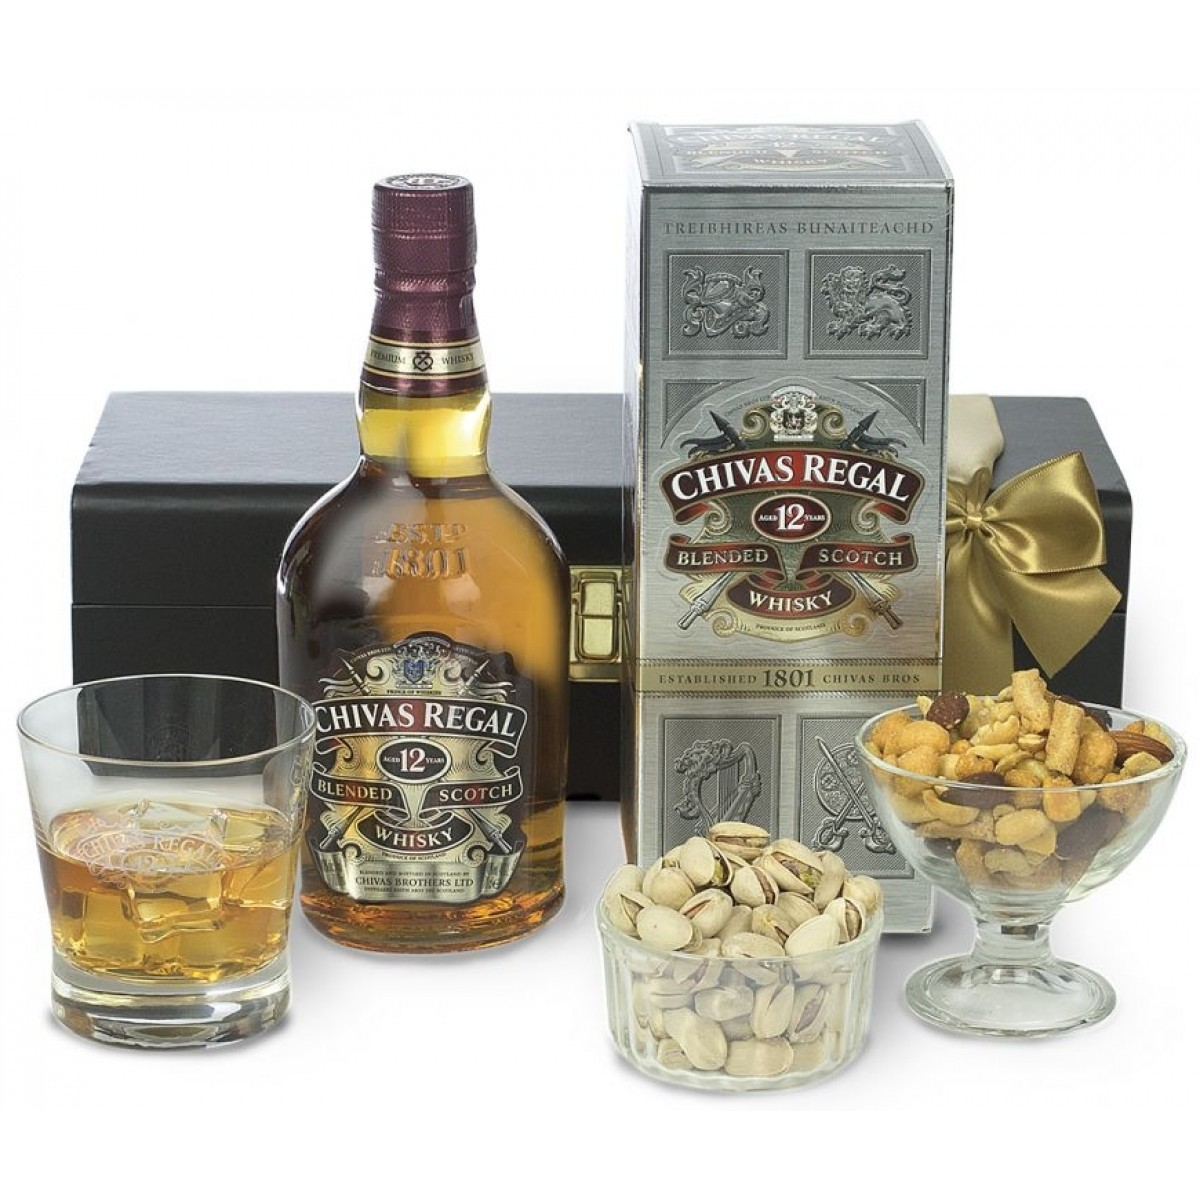 Комплект CHIVAS REGAL GIFT BOX